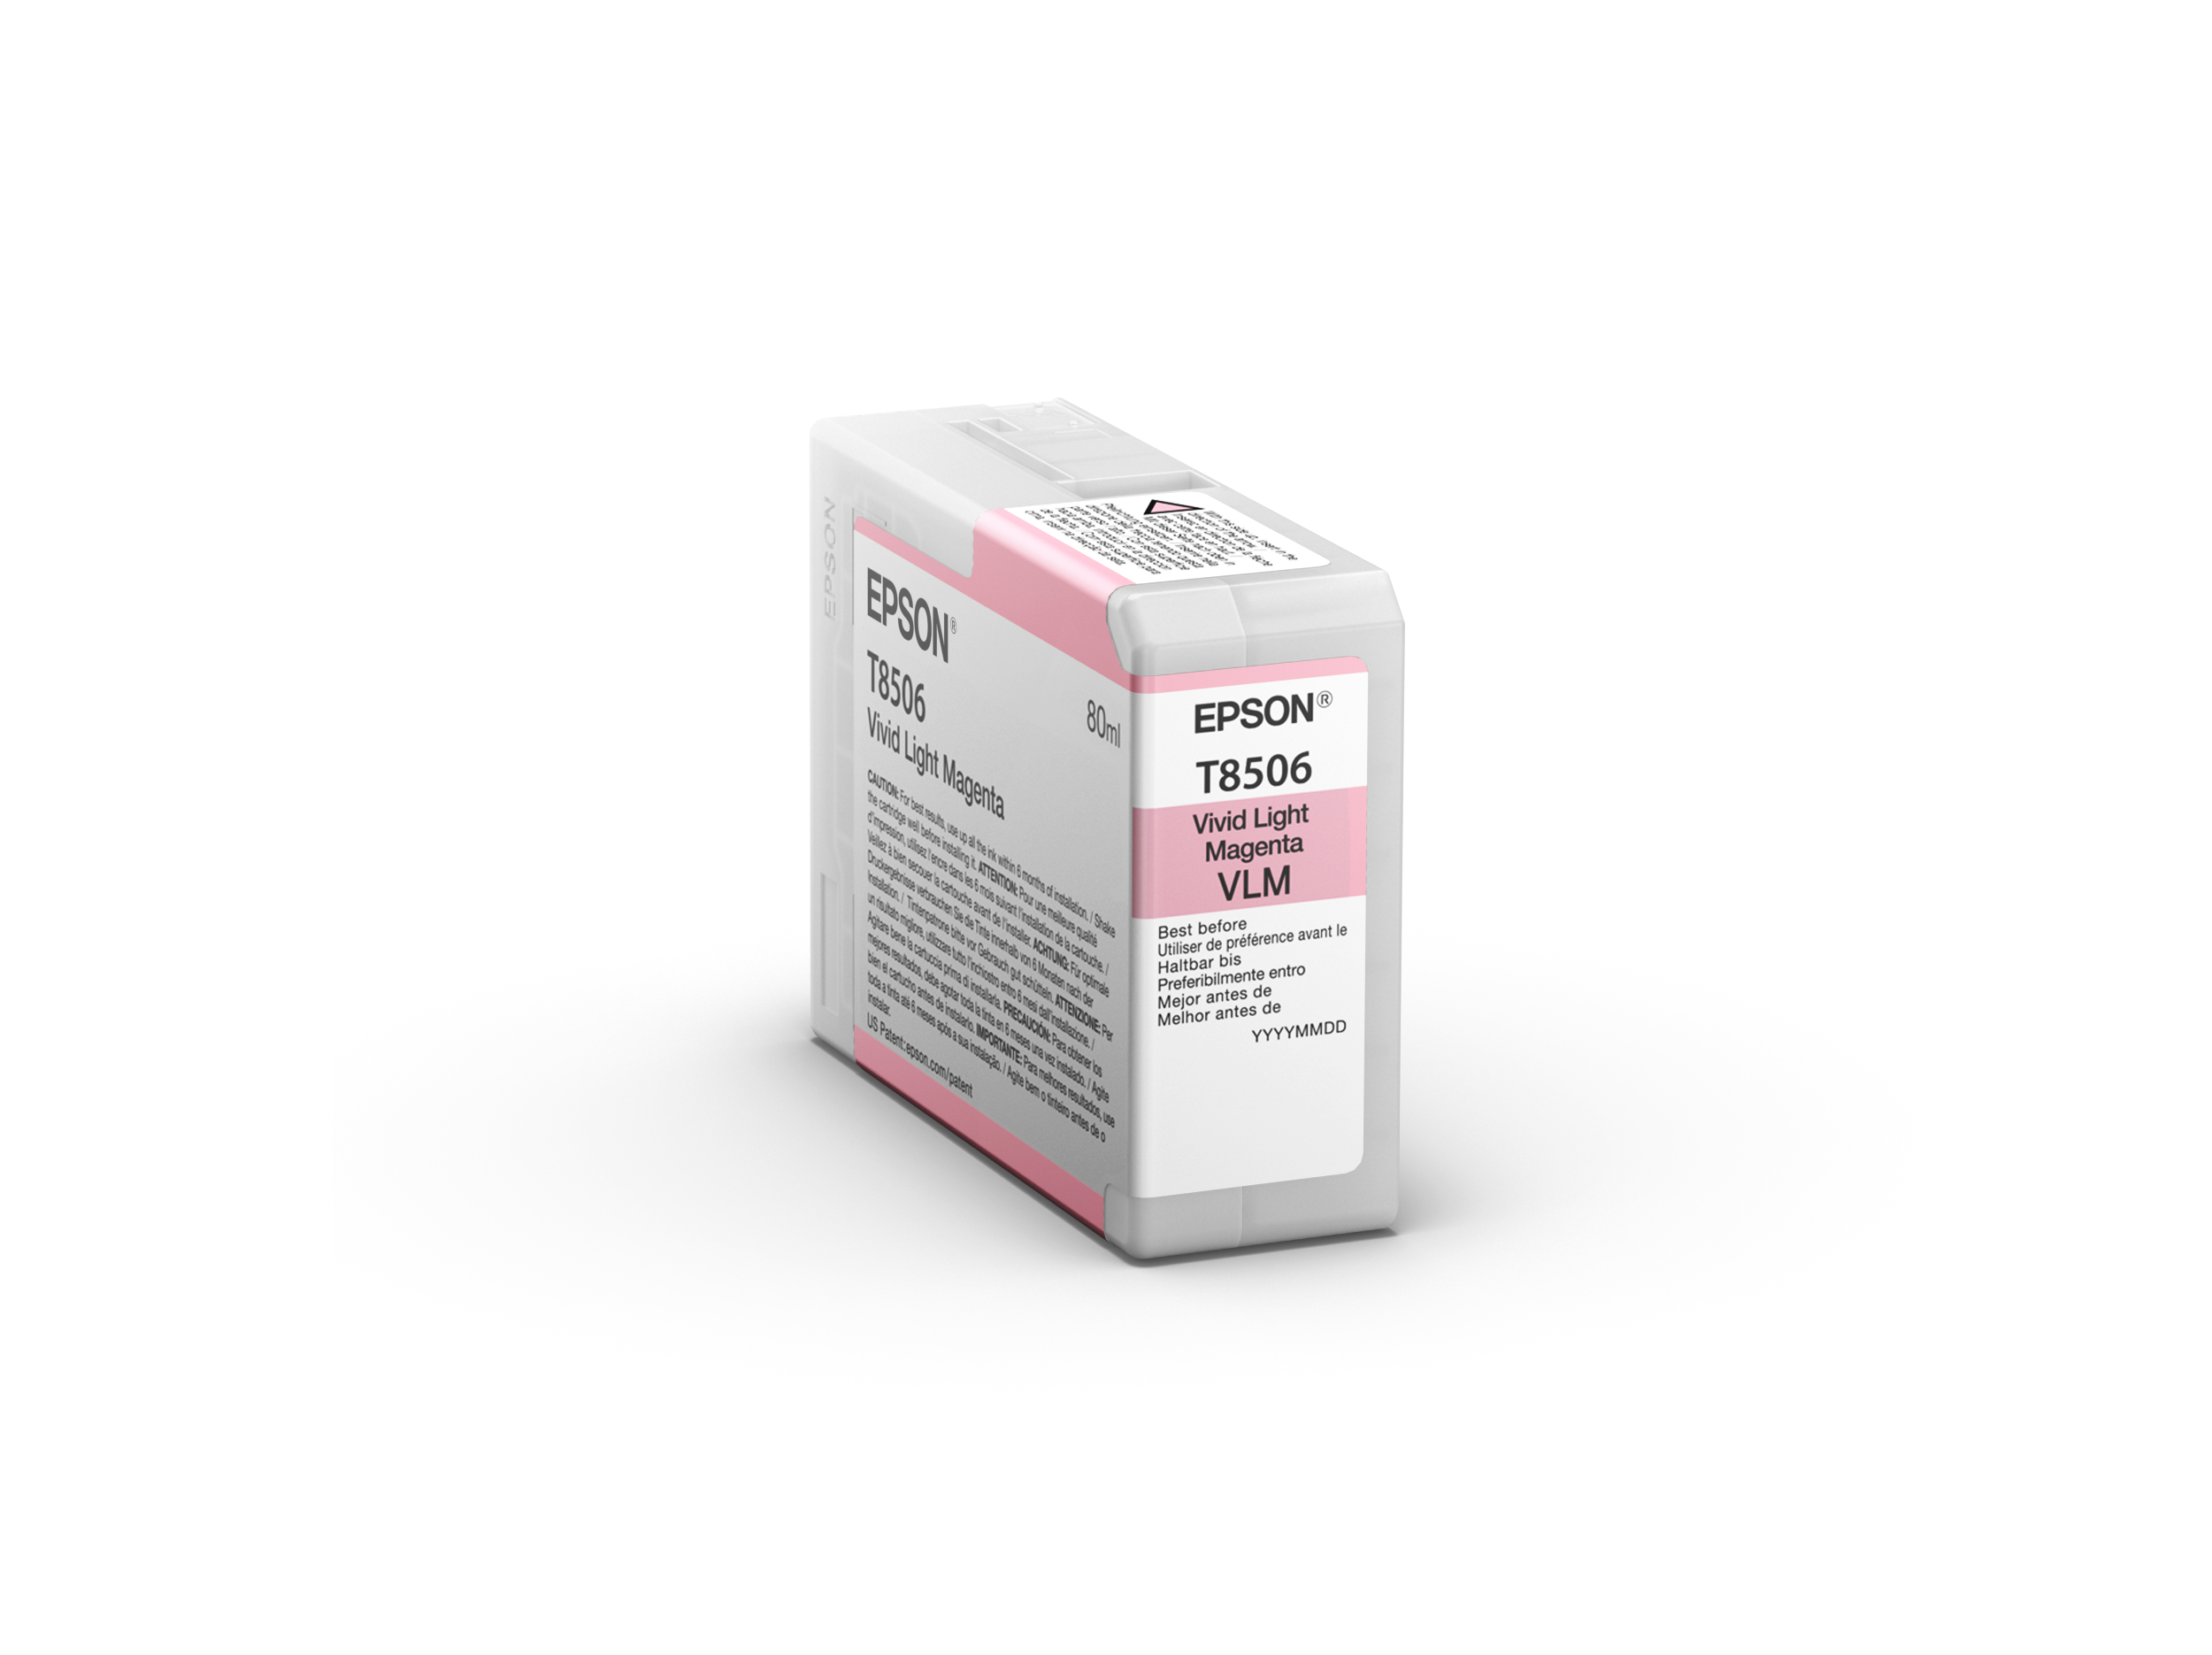 Epson SureColor SC-P800 Ultrachrome HD Ink VIVID LIGHT MAGENTA 80ml